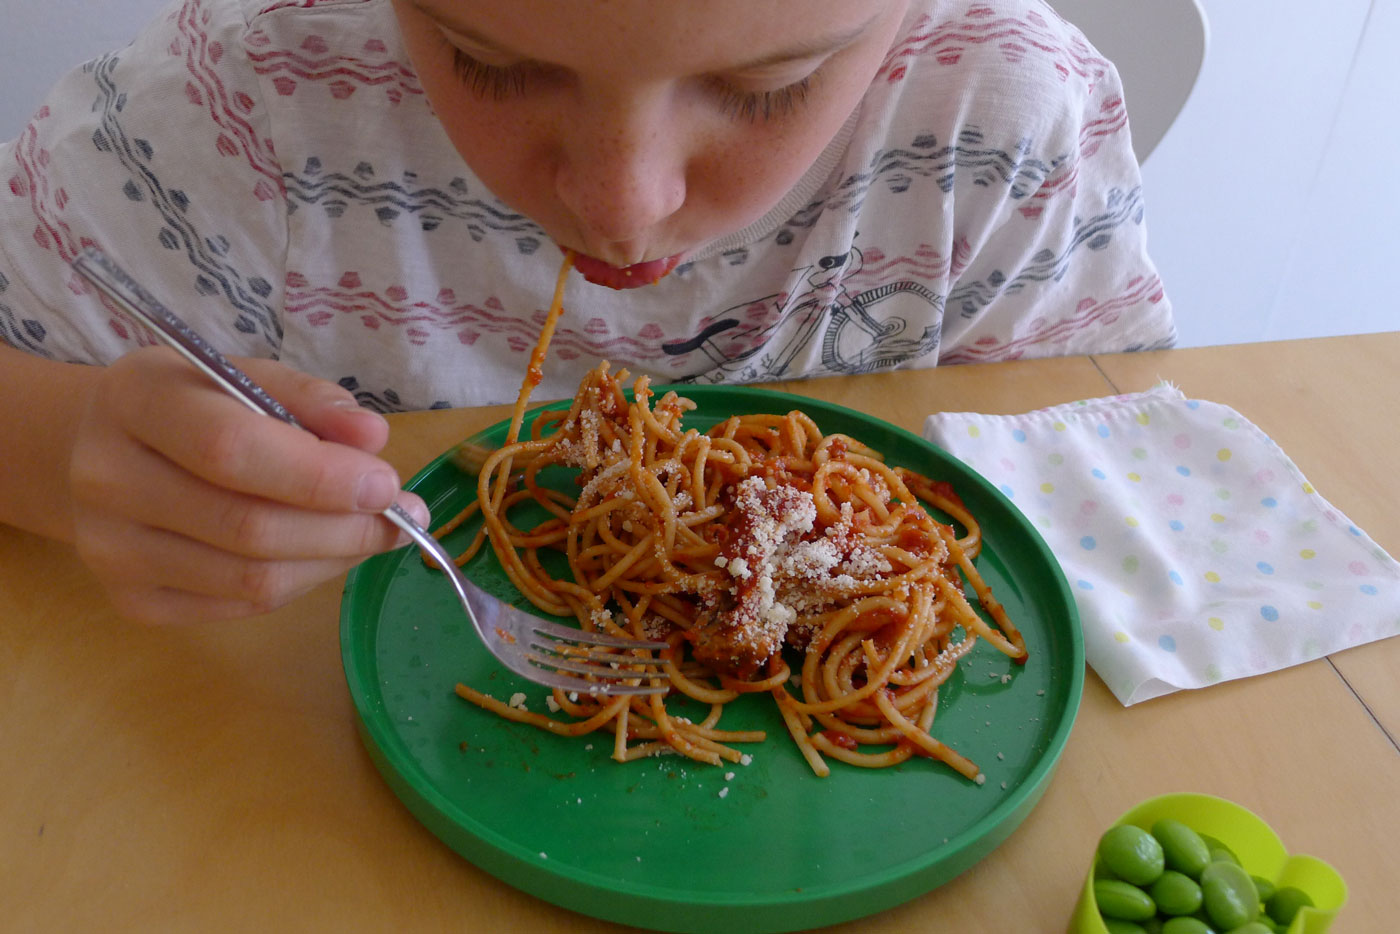 Iain digging into his spaghetti lunch